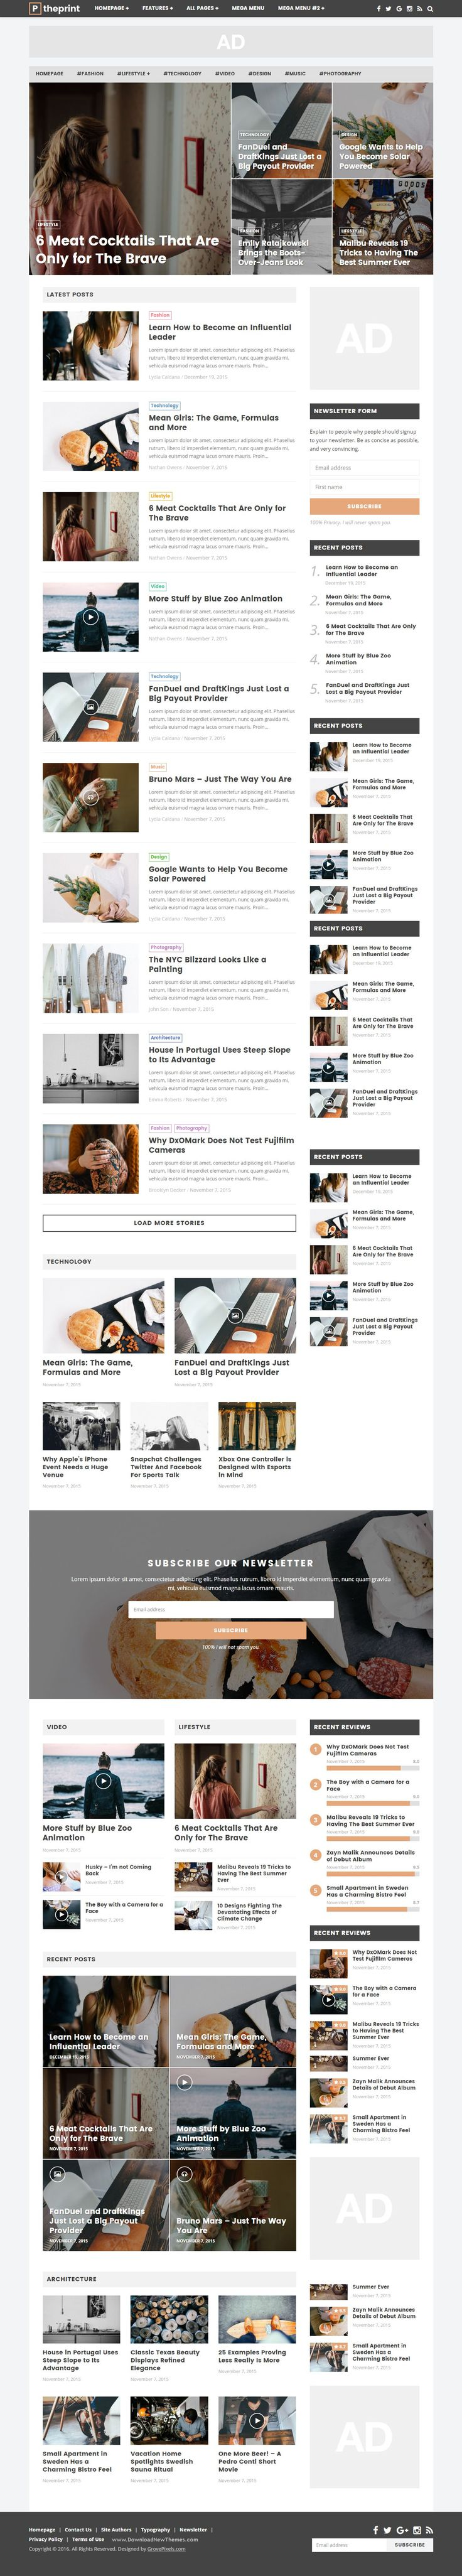 The Print is a simple, clean WordPress theme, and designed for online #magazine, #newspaper #websites, but it can also be used for simple personal #blogs. The Print was designed with a modern and minimal style, gorgeous typography for better reading experience, it is a perfect match for any content.